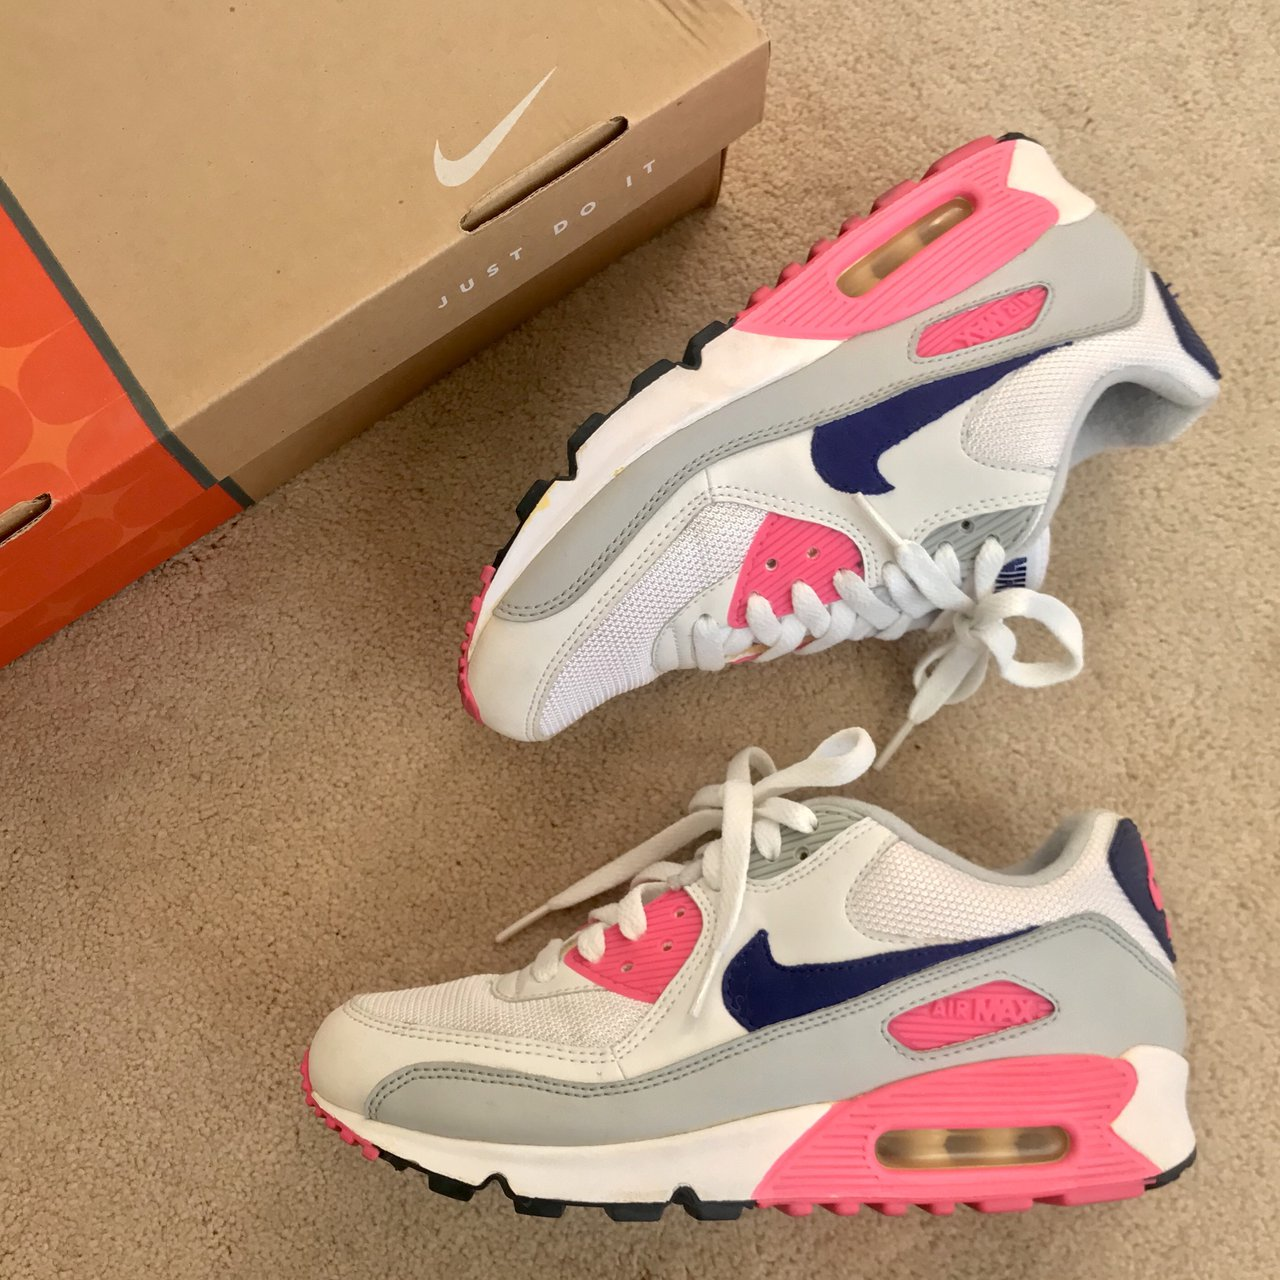 best service ab35f 2aaa7 NIKE WOMENS AIR MAX 90 CLASSIC CONCORD WHITE PINK a piece a - Depop